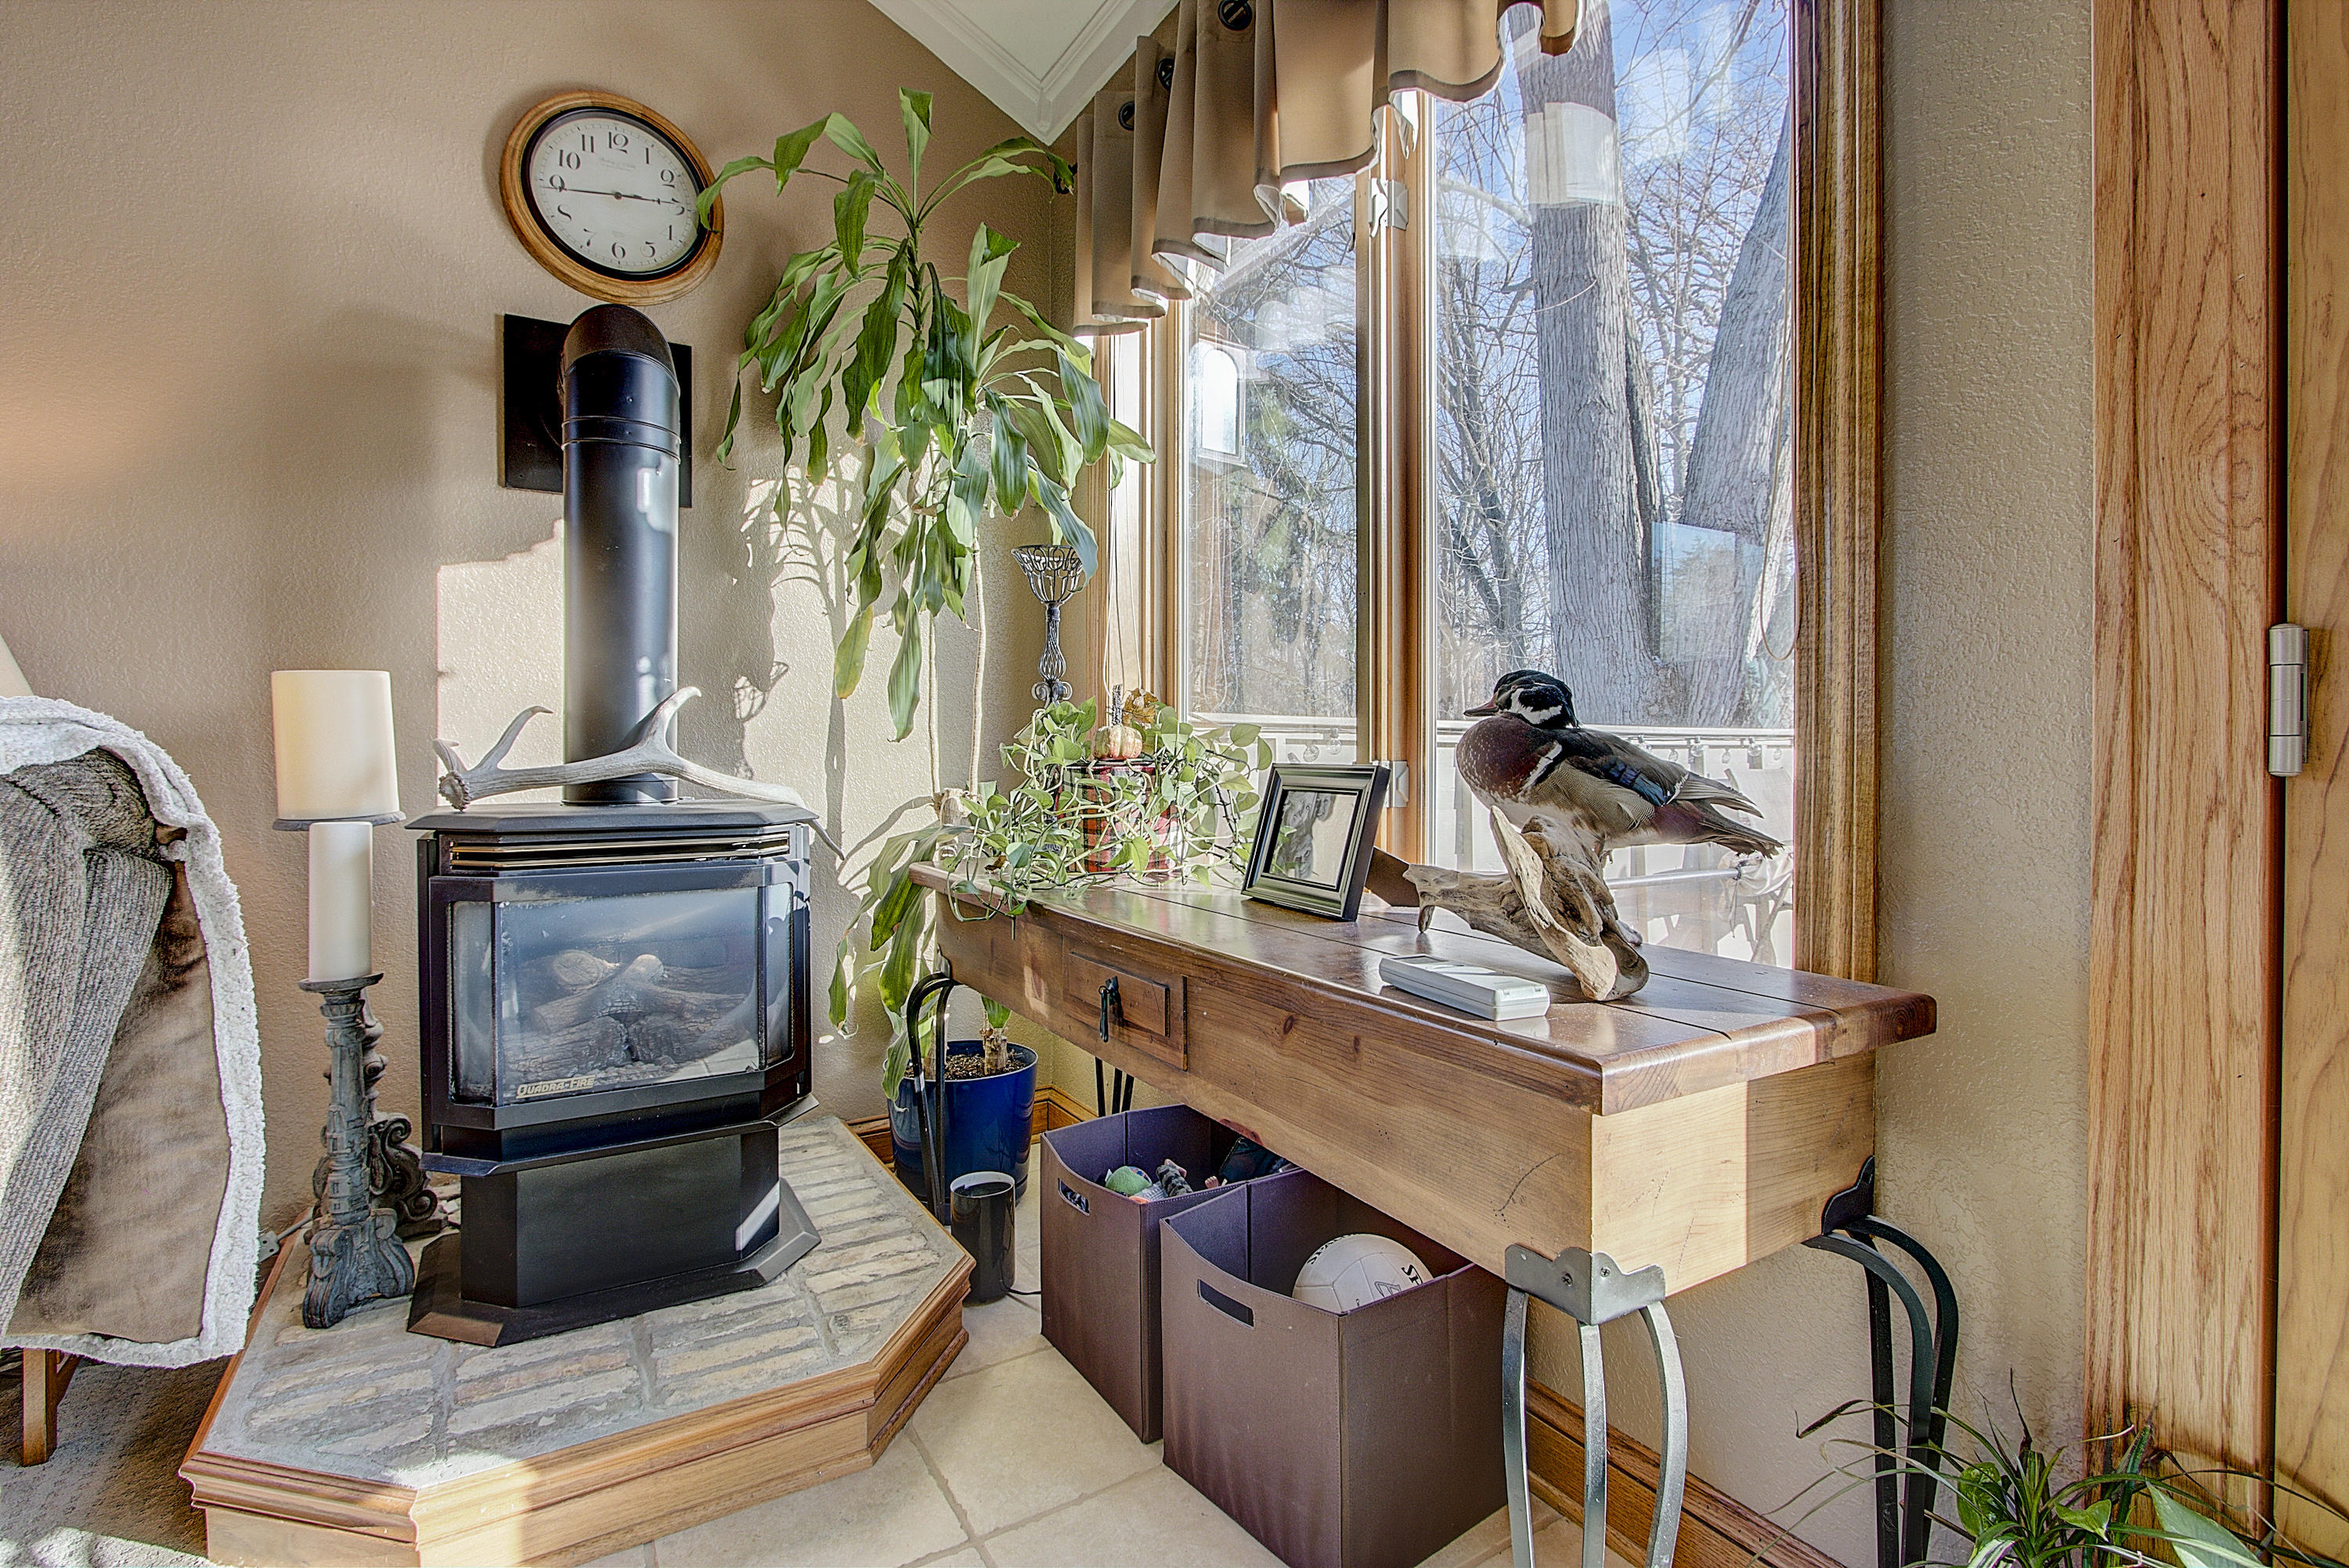 2129 Grange Ave, Milwaukee, Wisconsin 53221, 3 Bedrooms Bedrooms, 6 Rooms Rooms,1 BathroomBathrooms,Single-Family,For Sale,Grange Ave,1622471